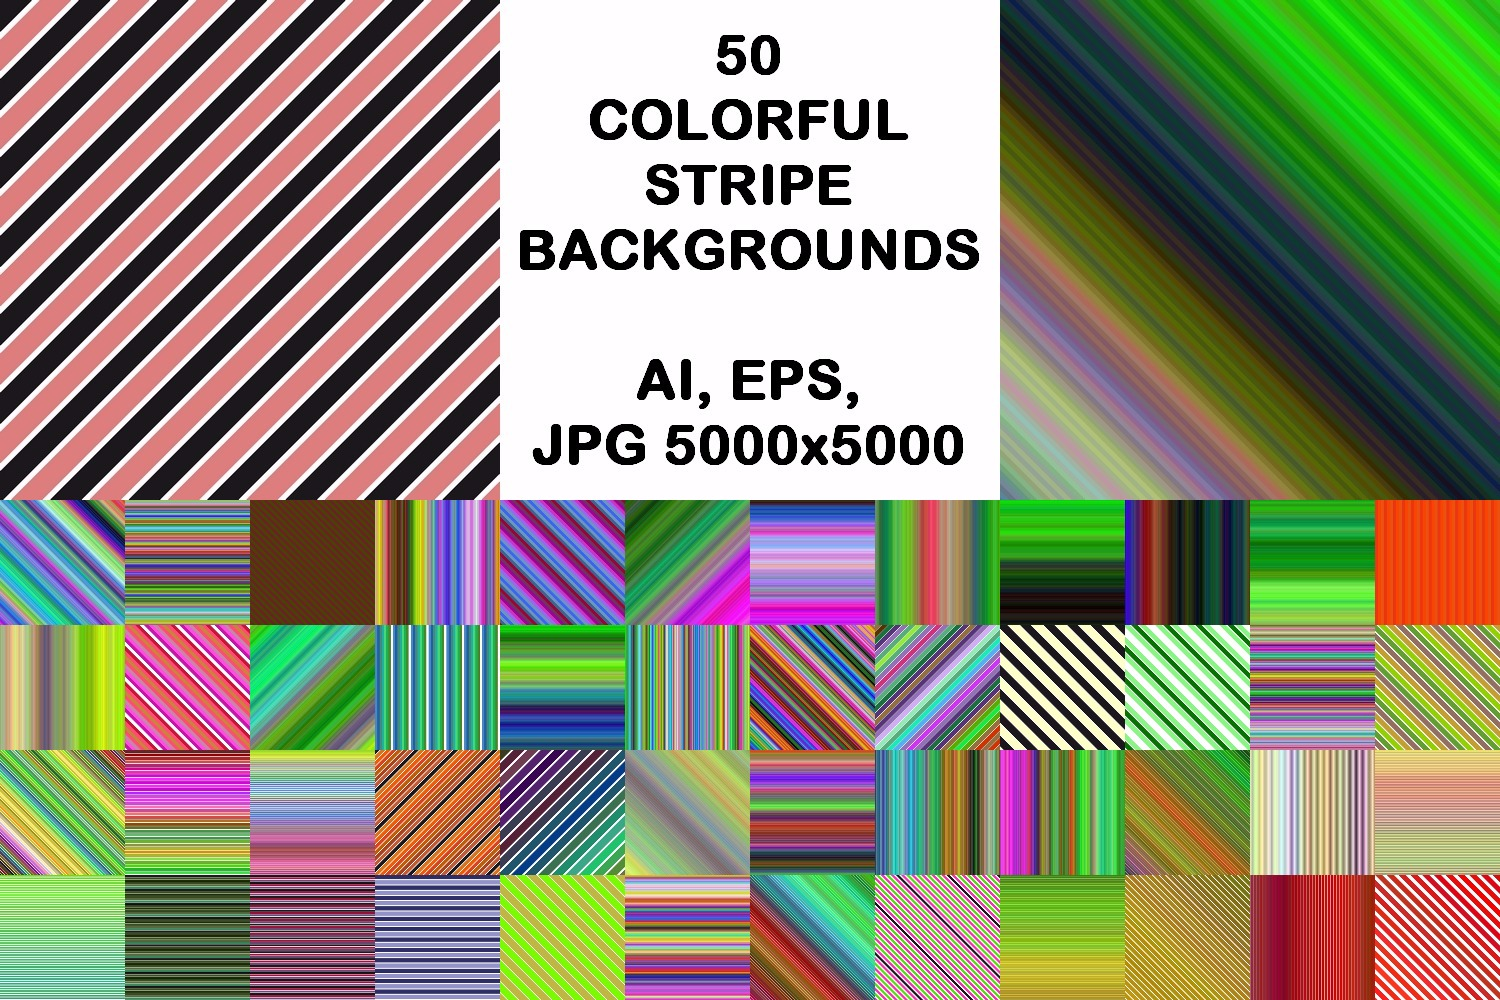 50 colorful stripe backgrounds (AI, EPS, JPG 5000x5000) example image 1